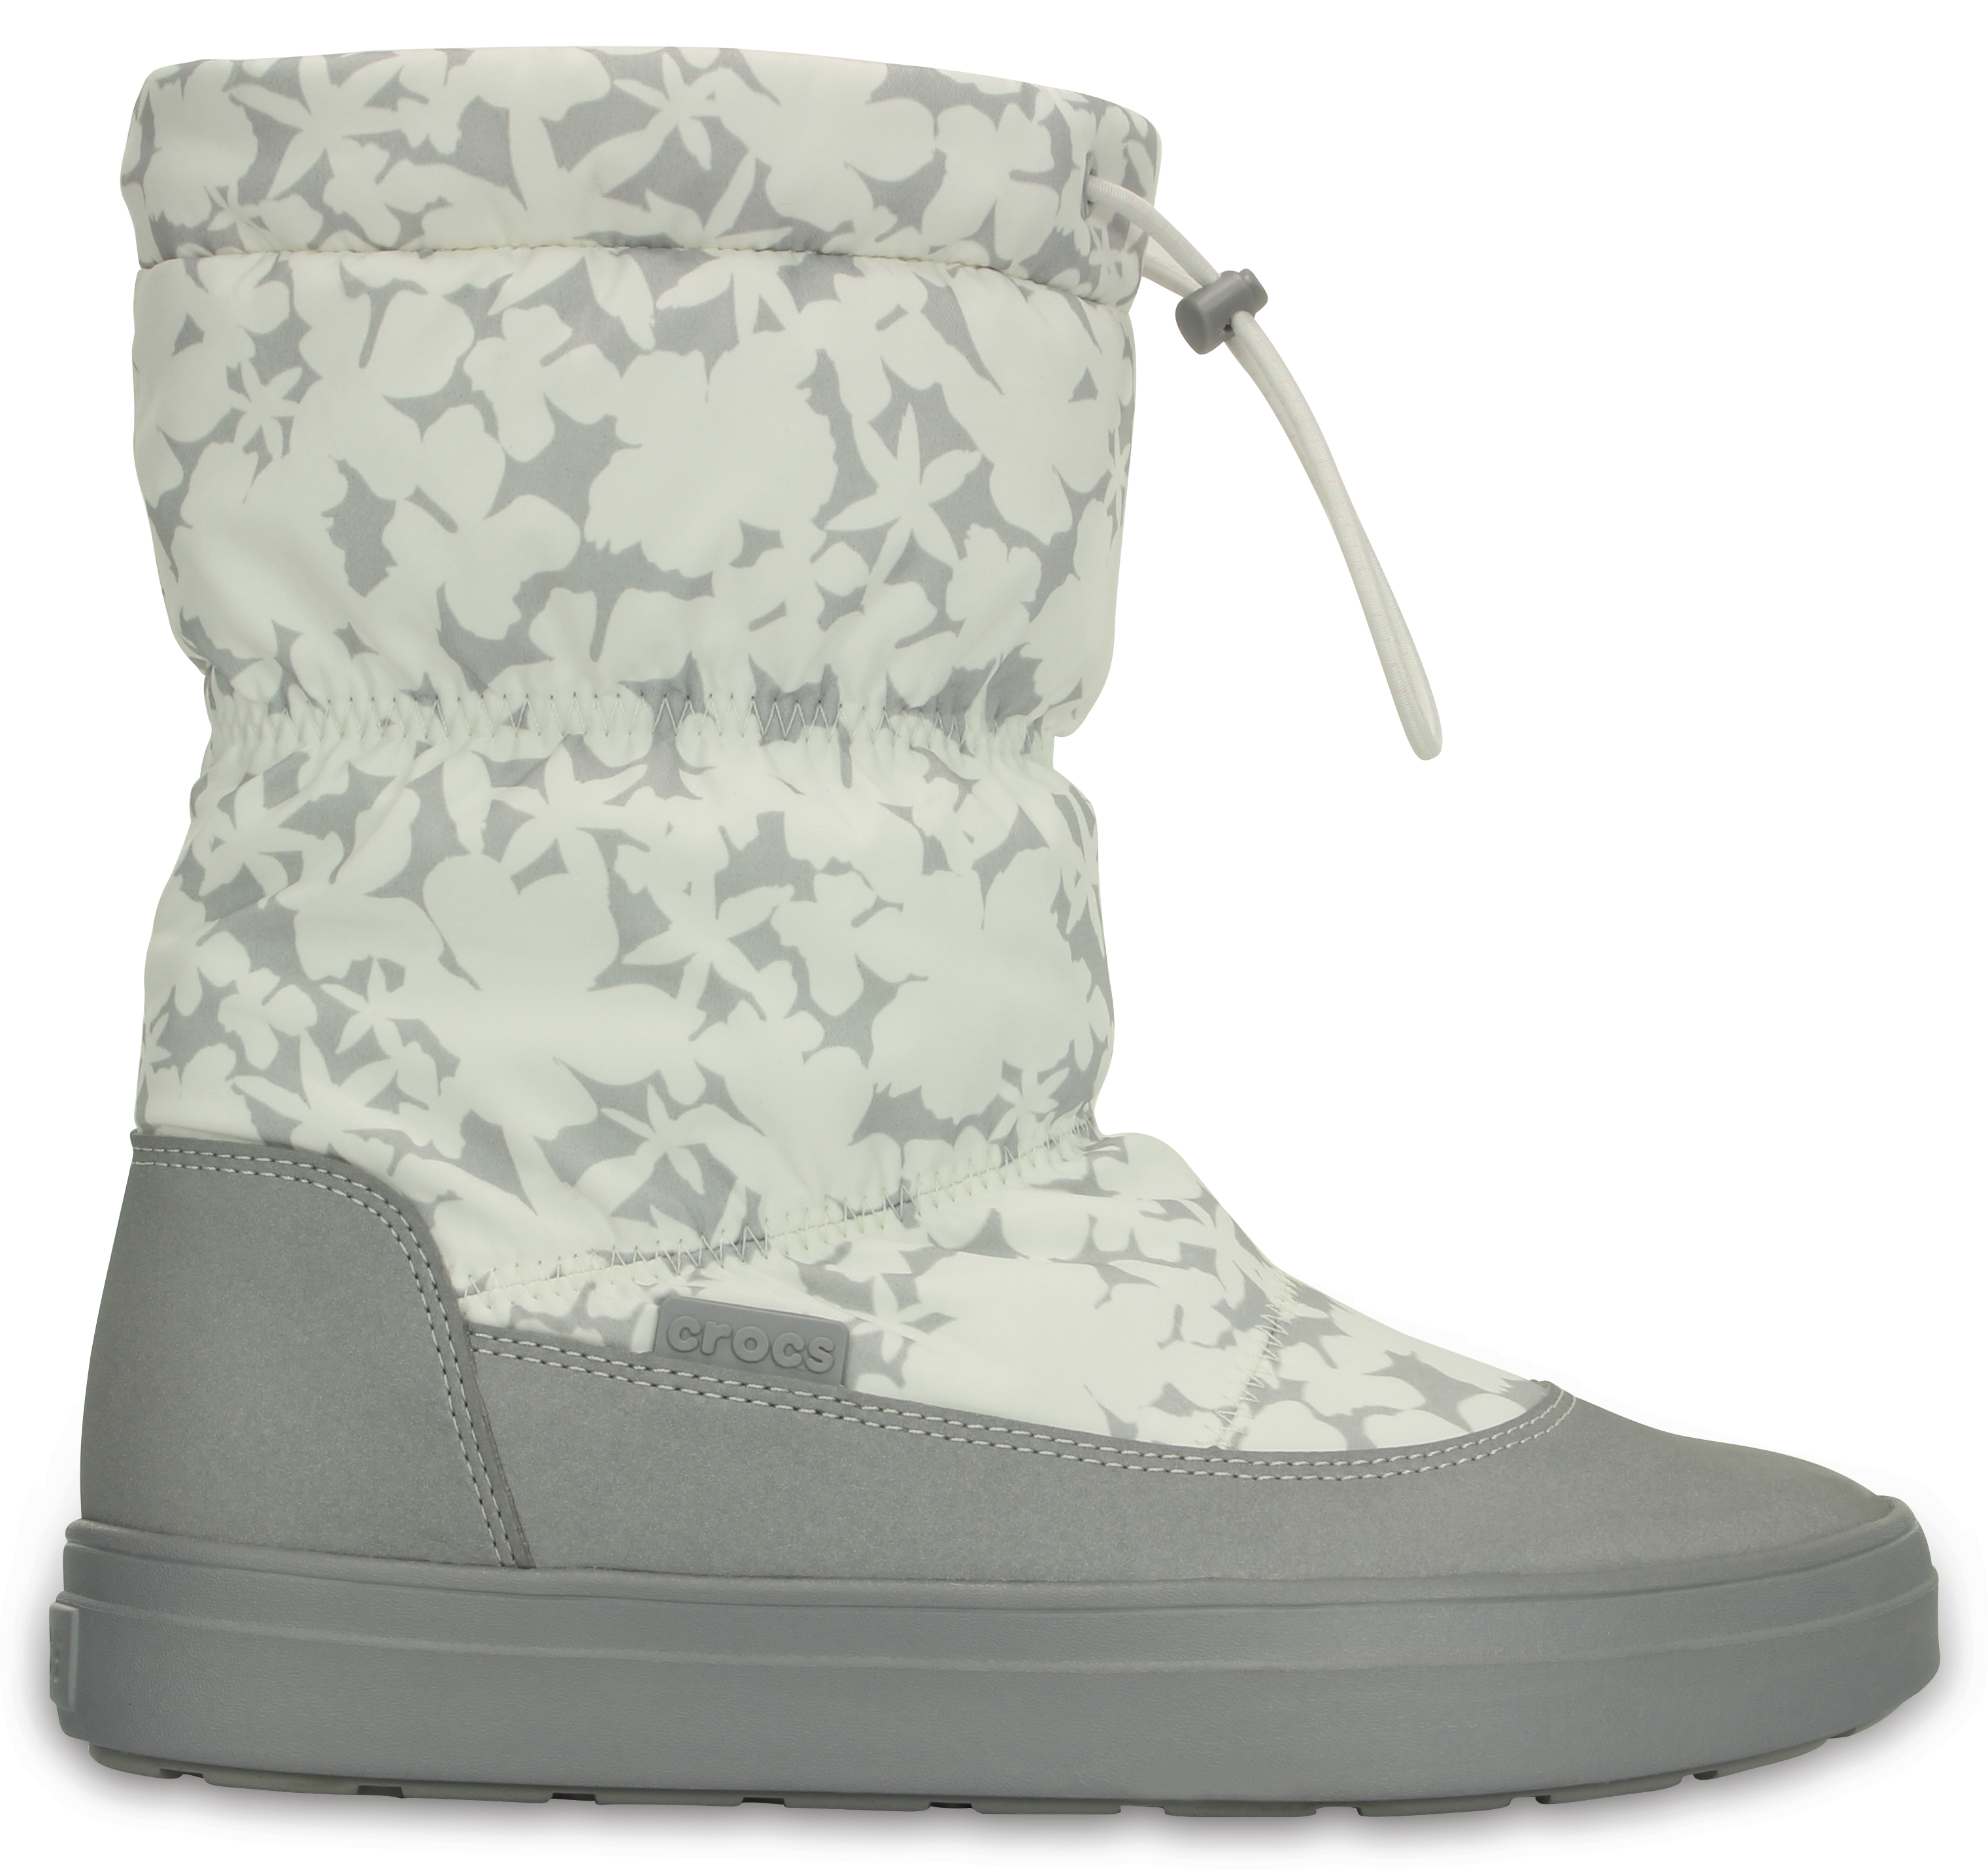 Crocs LodgePoint Pull-on Boot W - Oyster W7